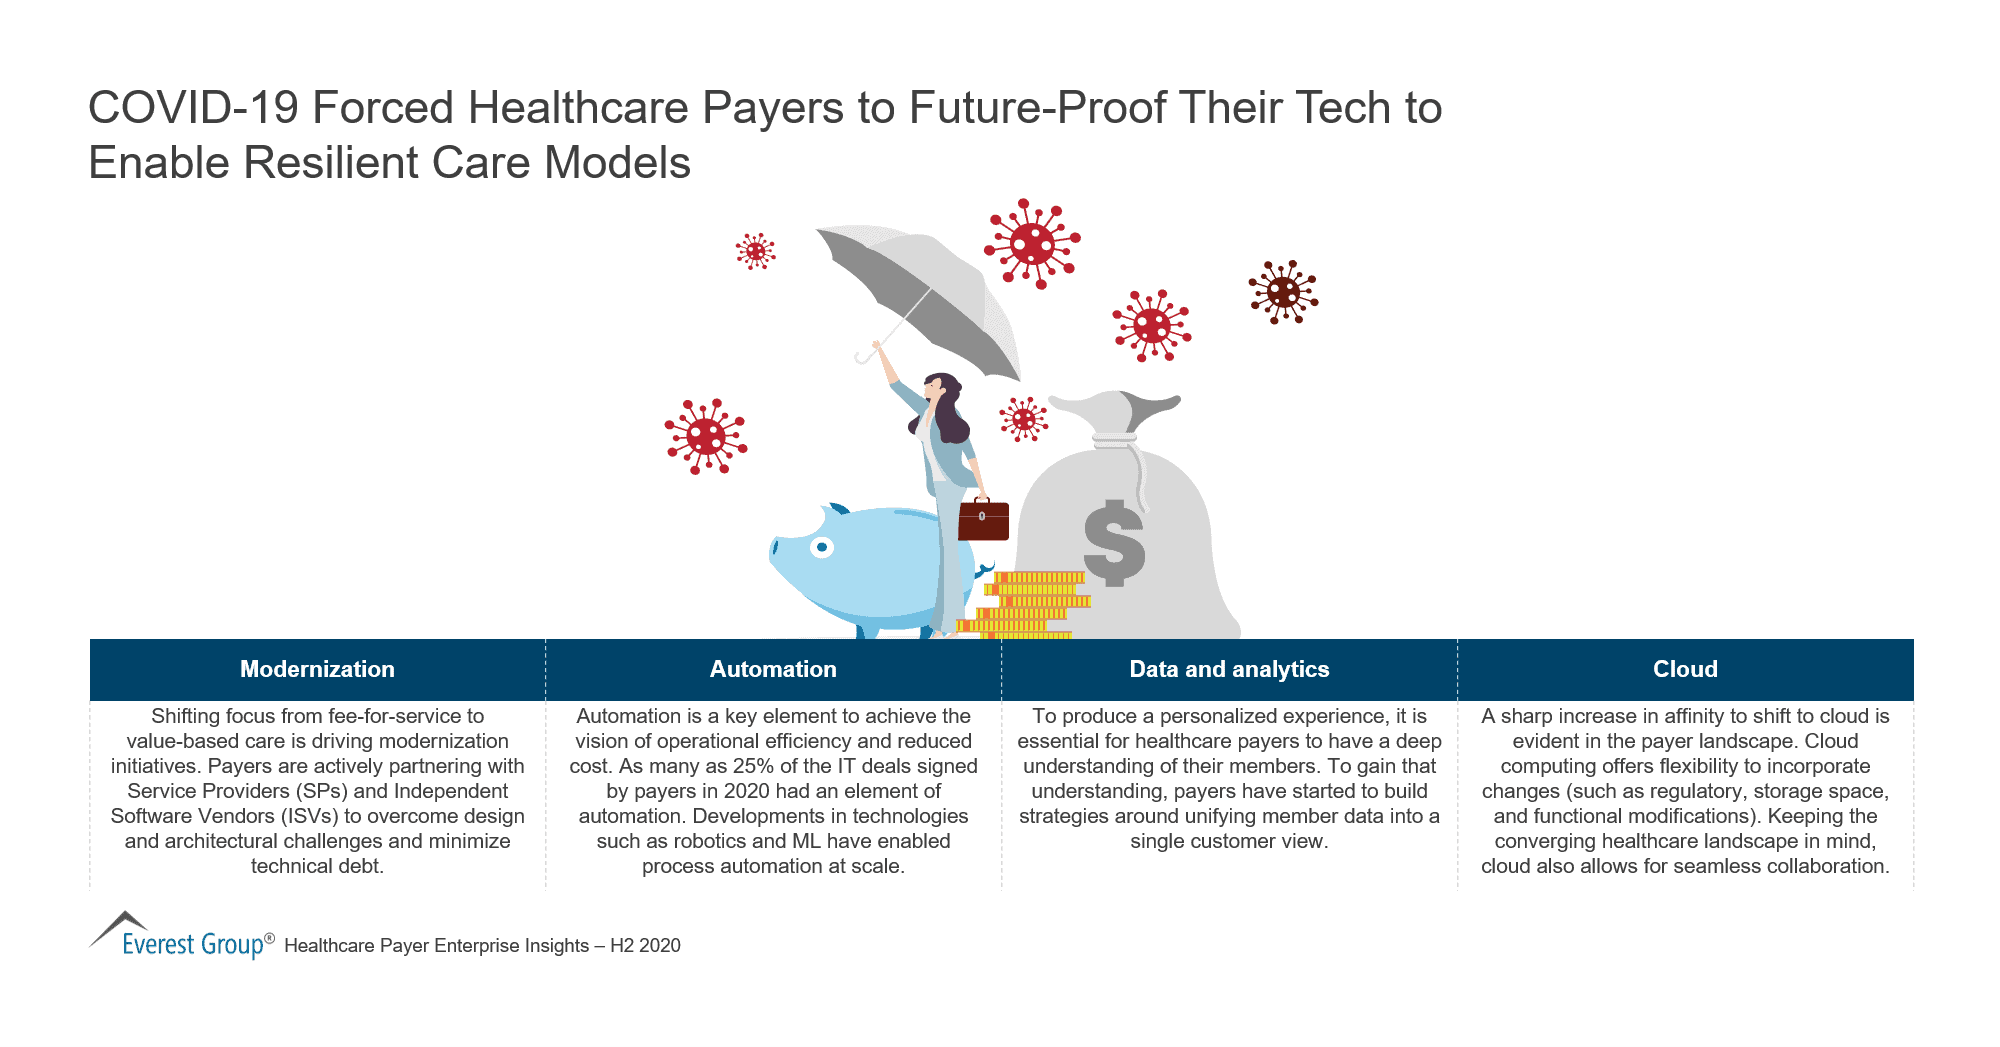 COVID-19 Forced Healthcare Payers to Future-Proof Their Tech